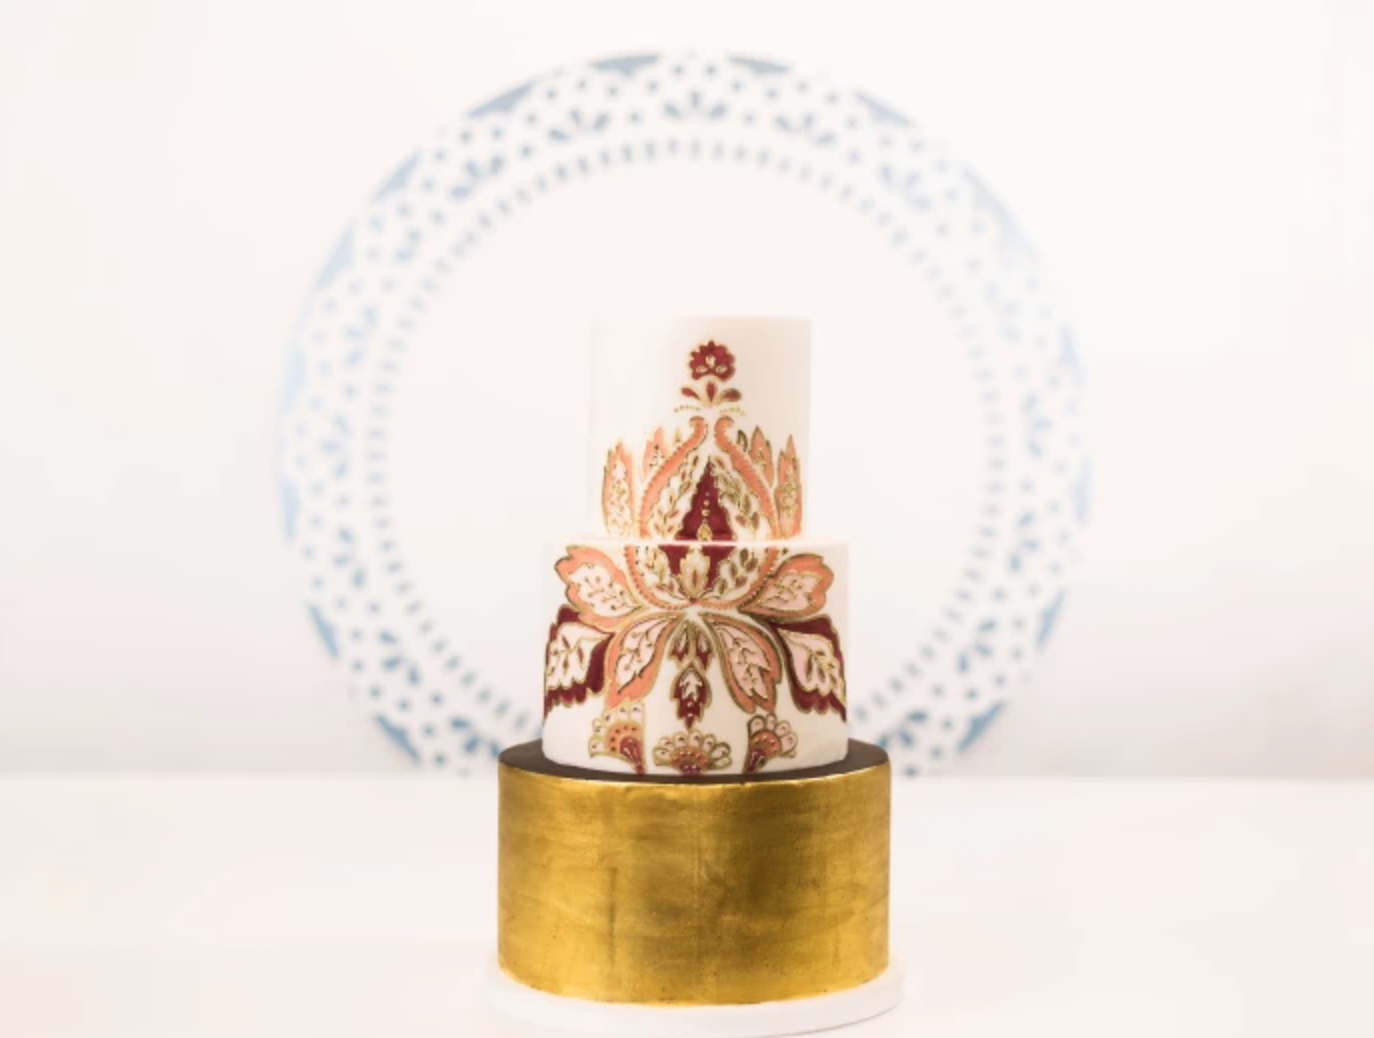 tiered cake with gold leaf base